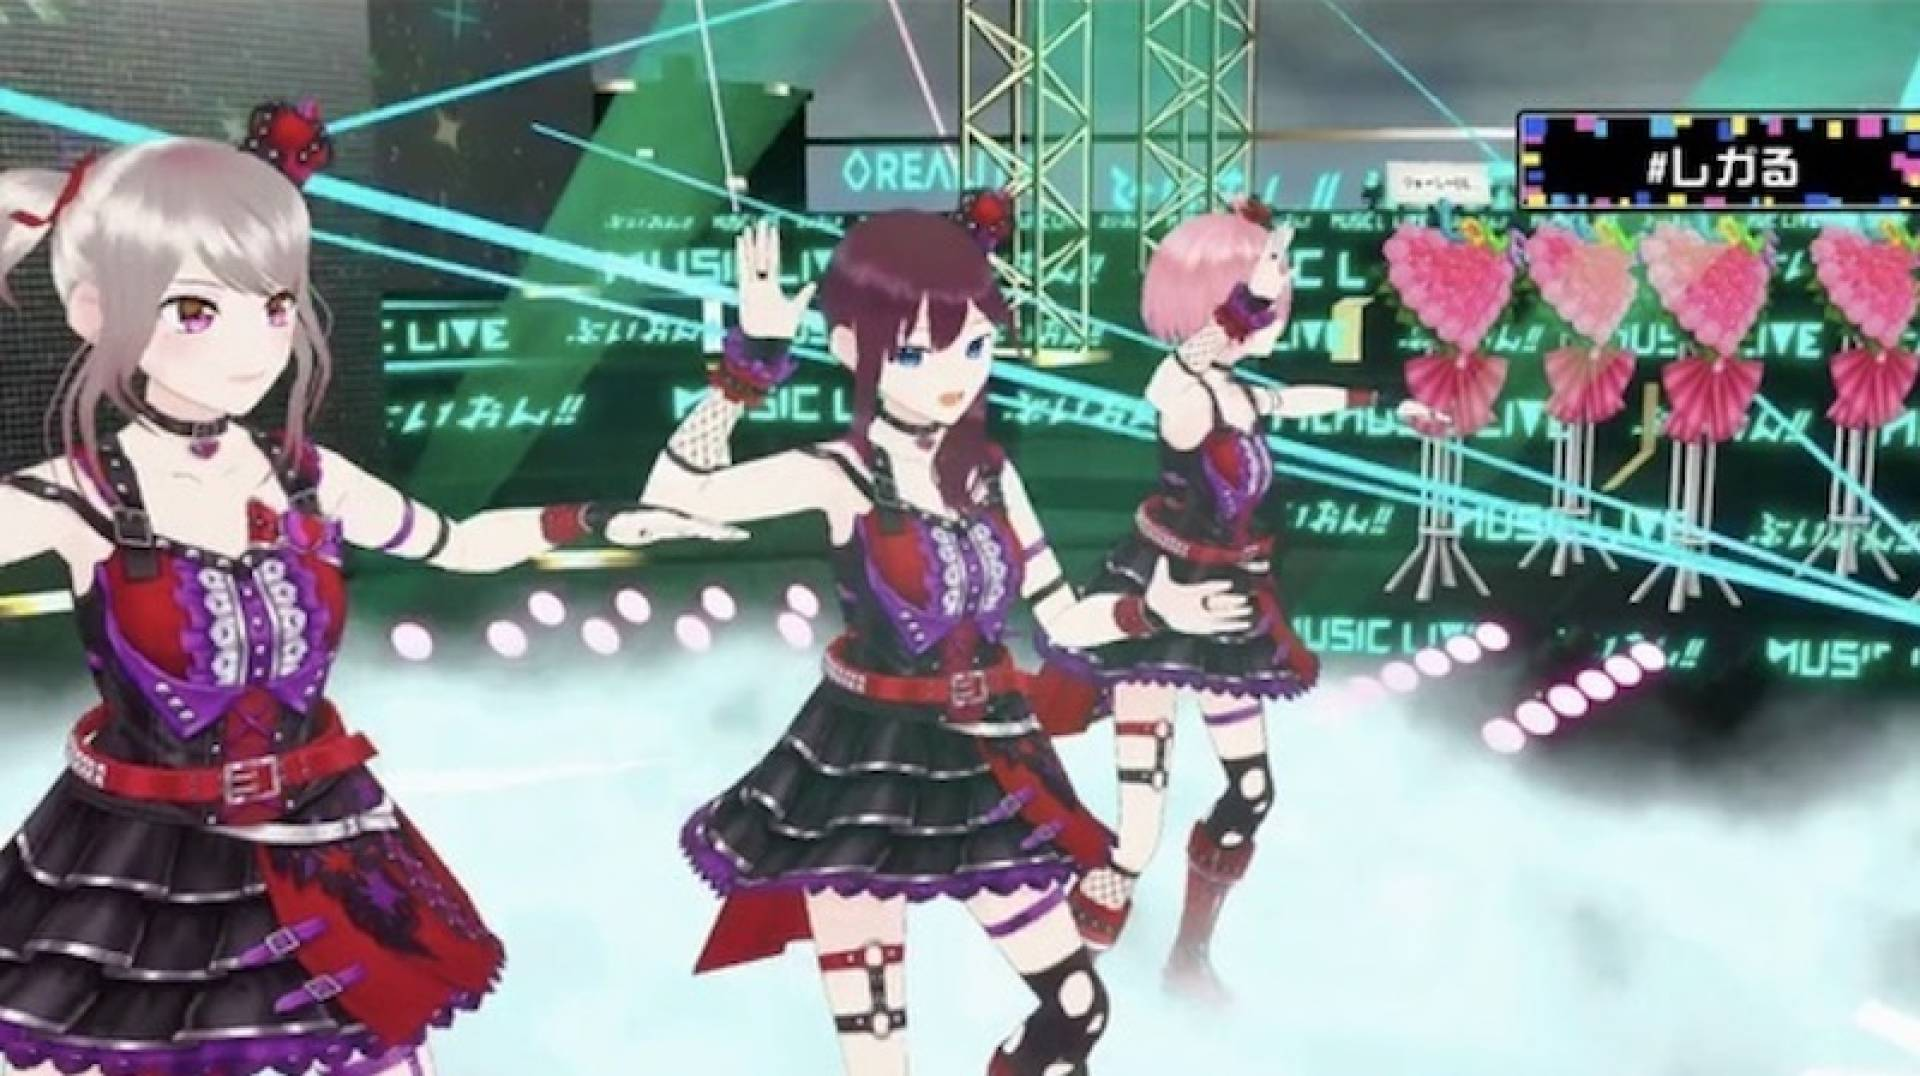 REGALILIA, a new virtual metal idol unit from Palette Project, just made its official debut on June 27th.